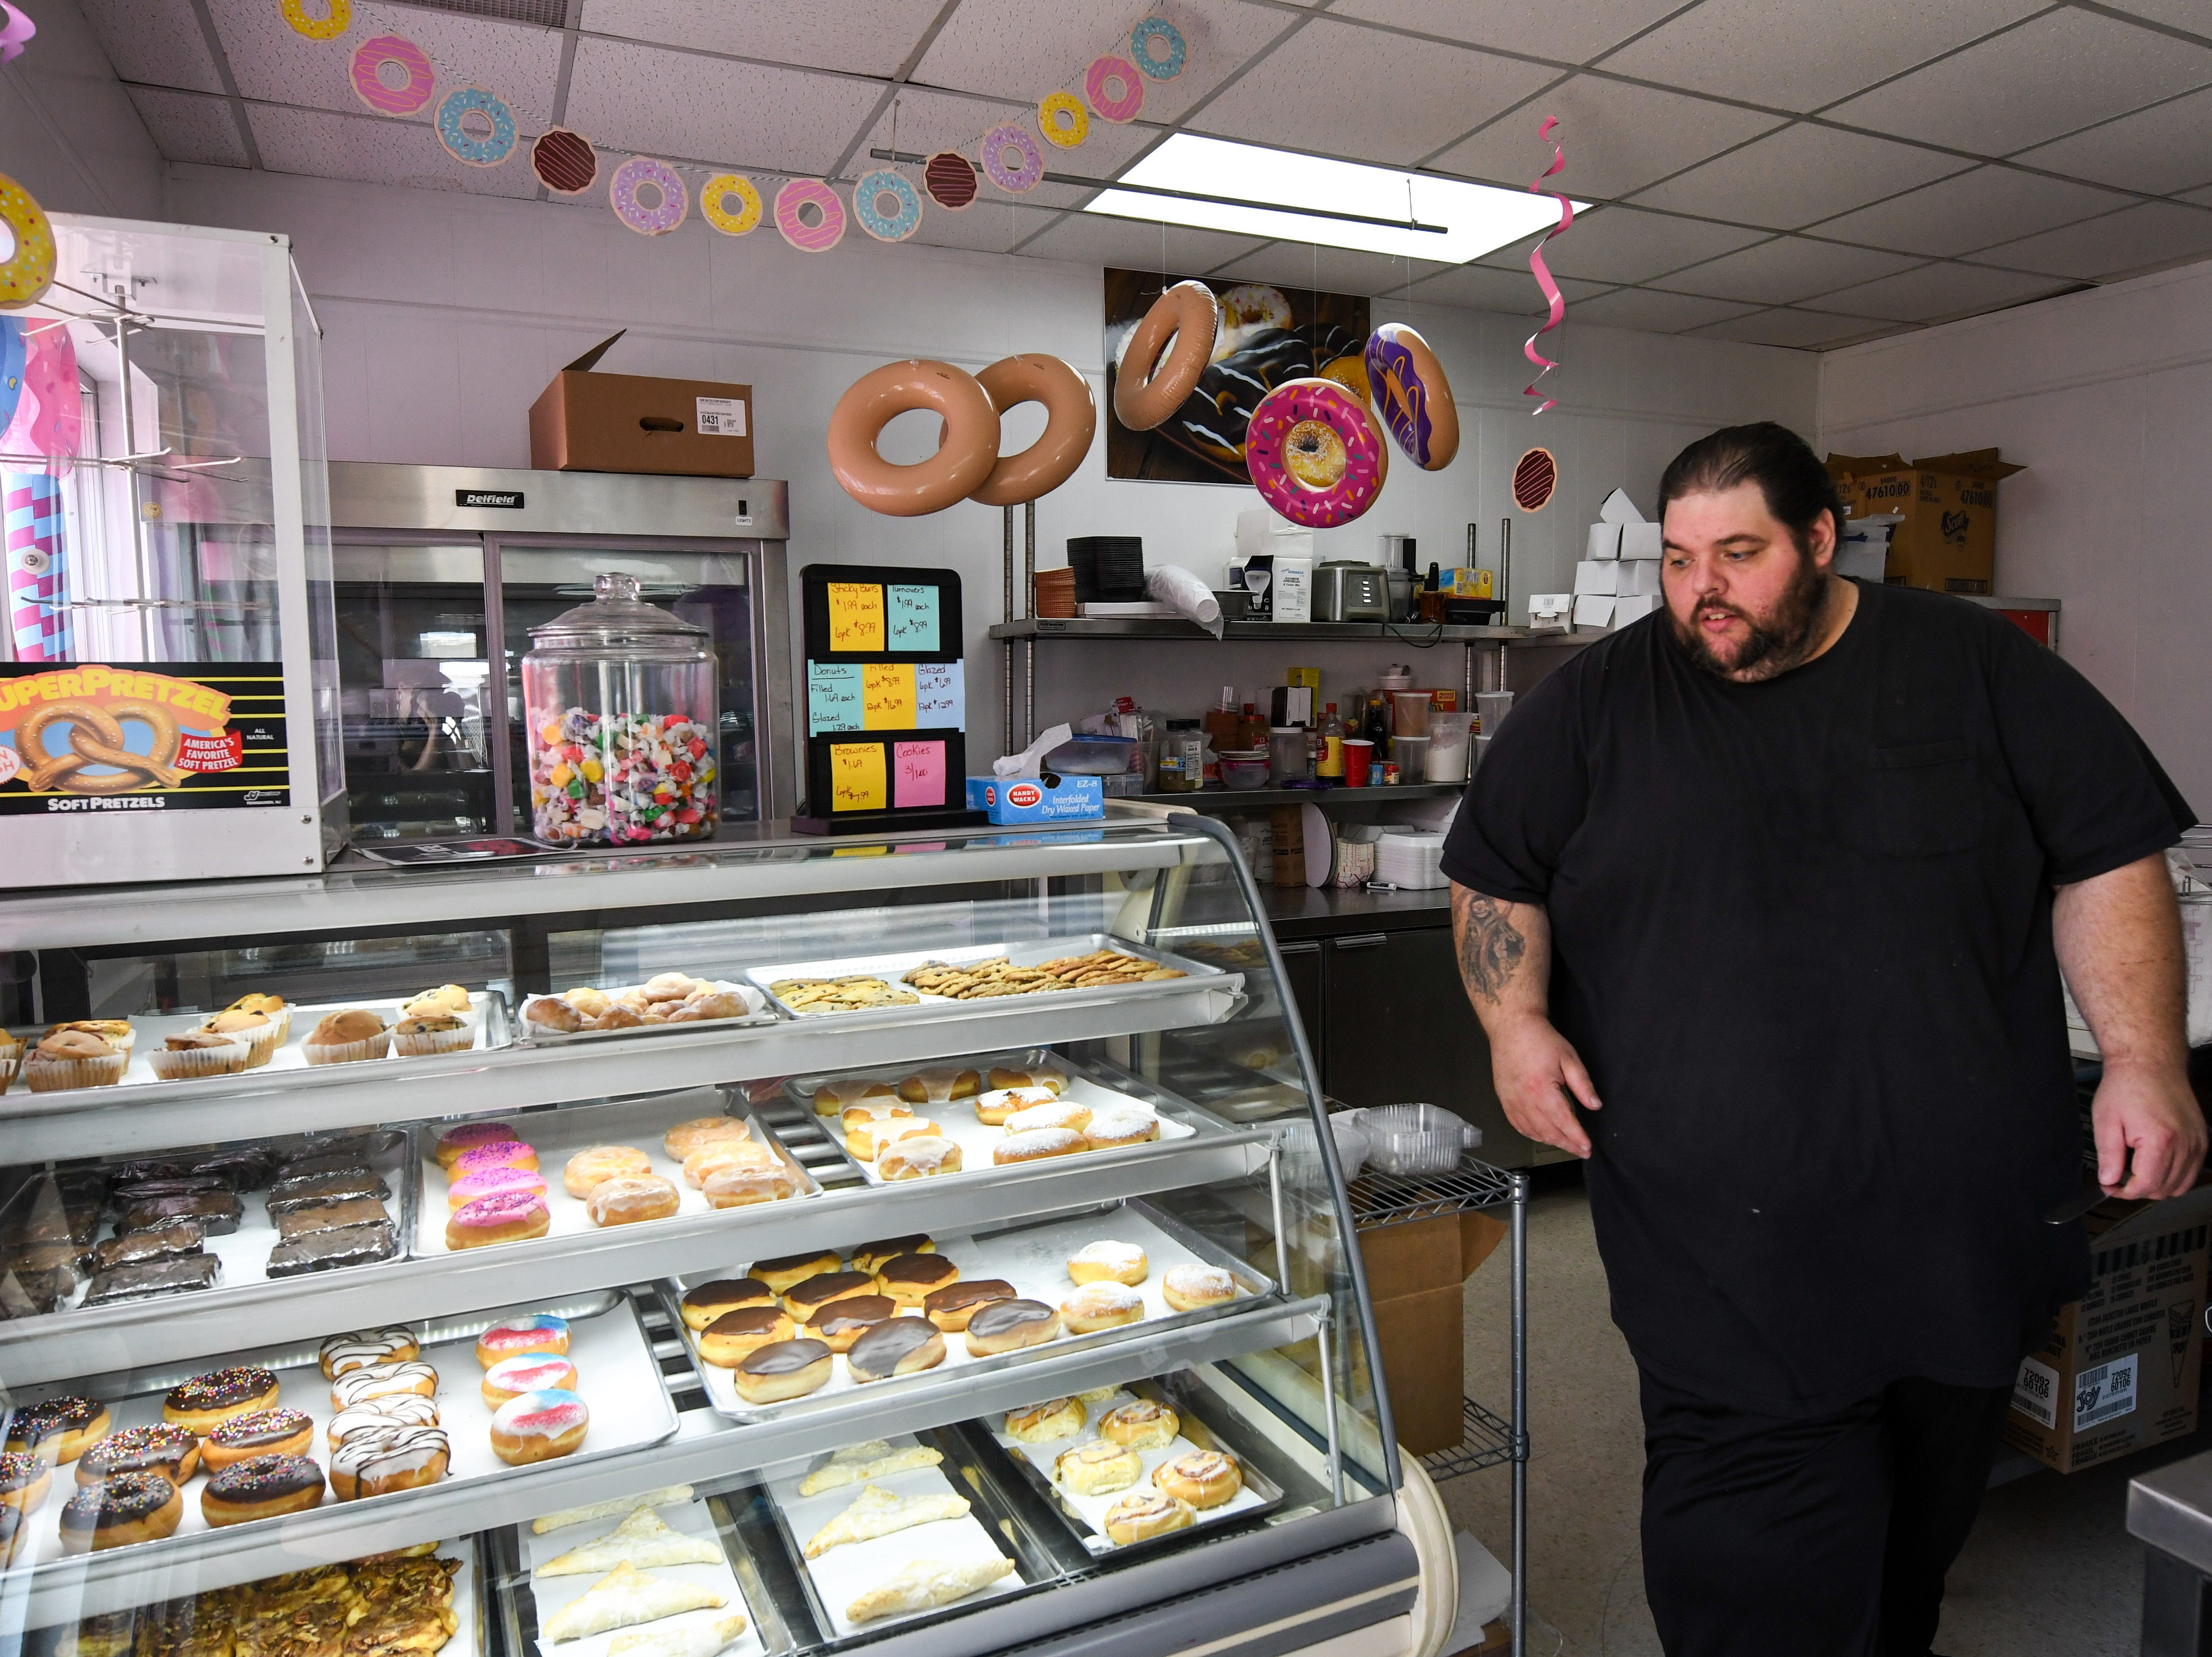 Owner John Konkel walks to the front of the doughnut display case at new bakery Johnnysweets in Crisfield on August 9.